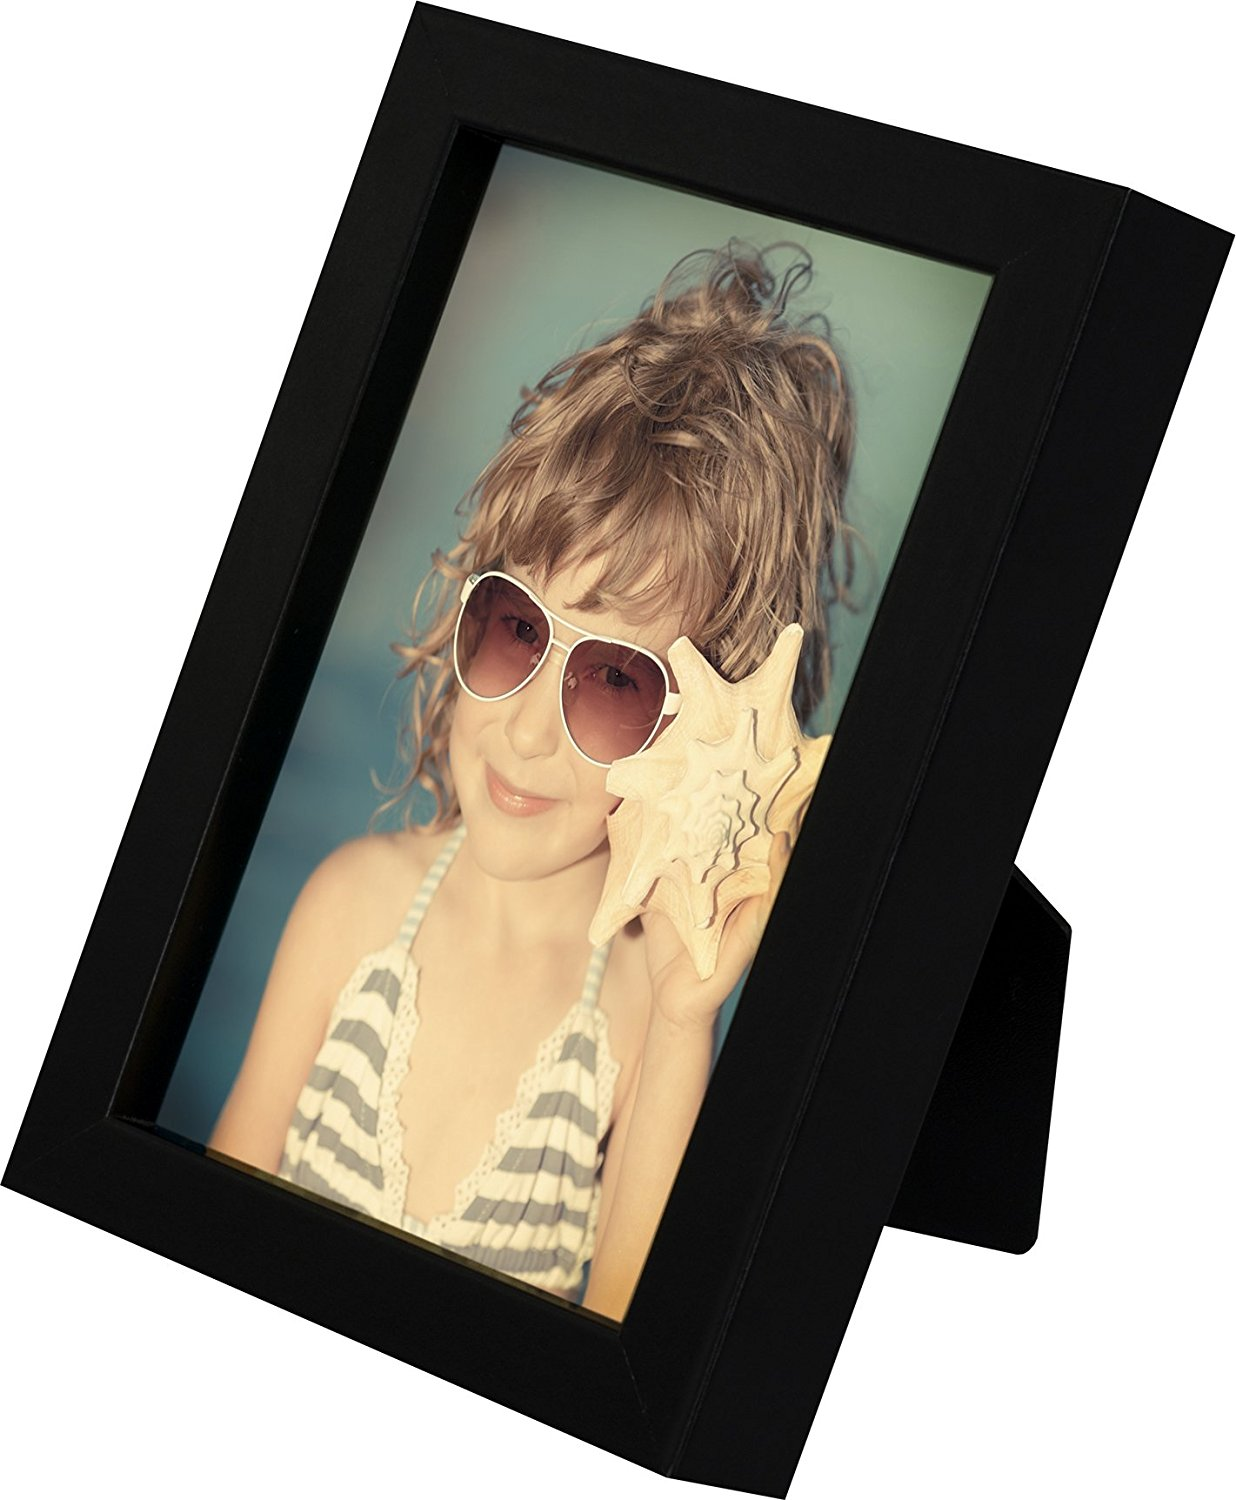 4 x 6-Inch Picture Photo Frame, BLACK